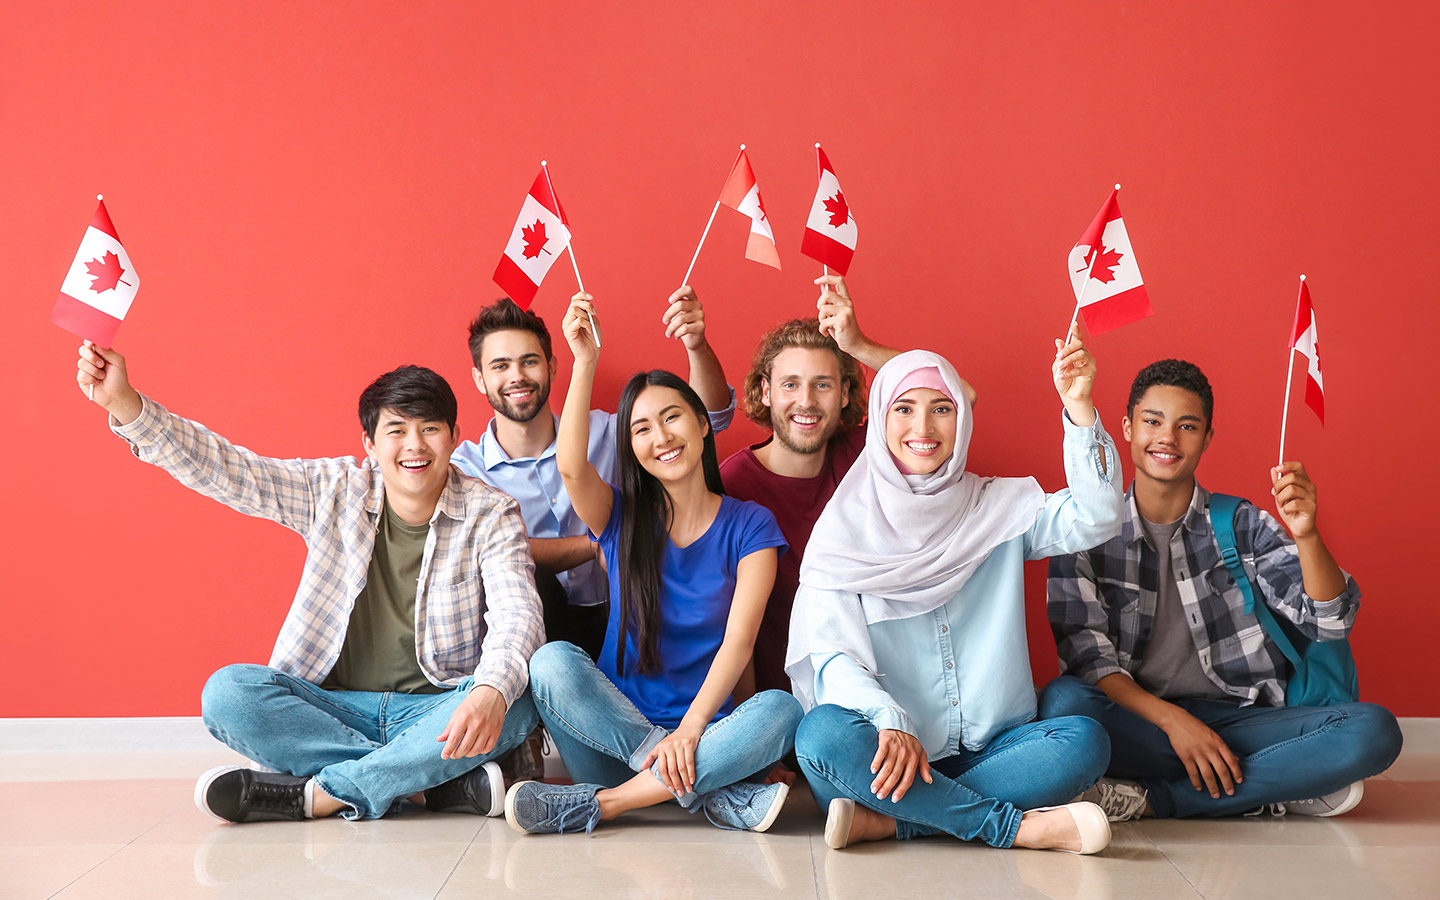 Students holding up the Canadian flag in front of a red background